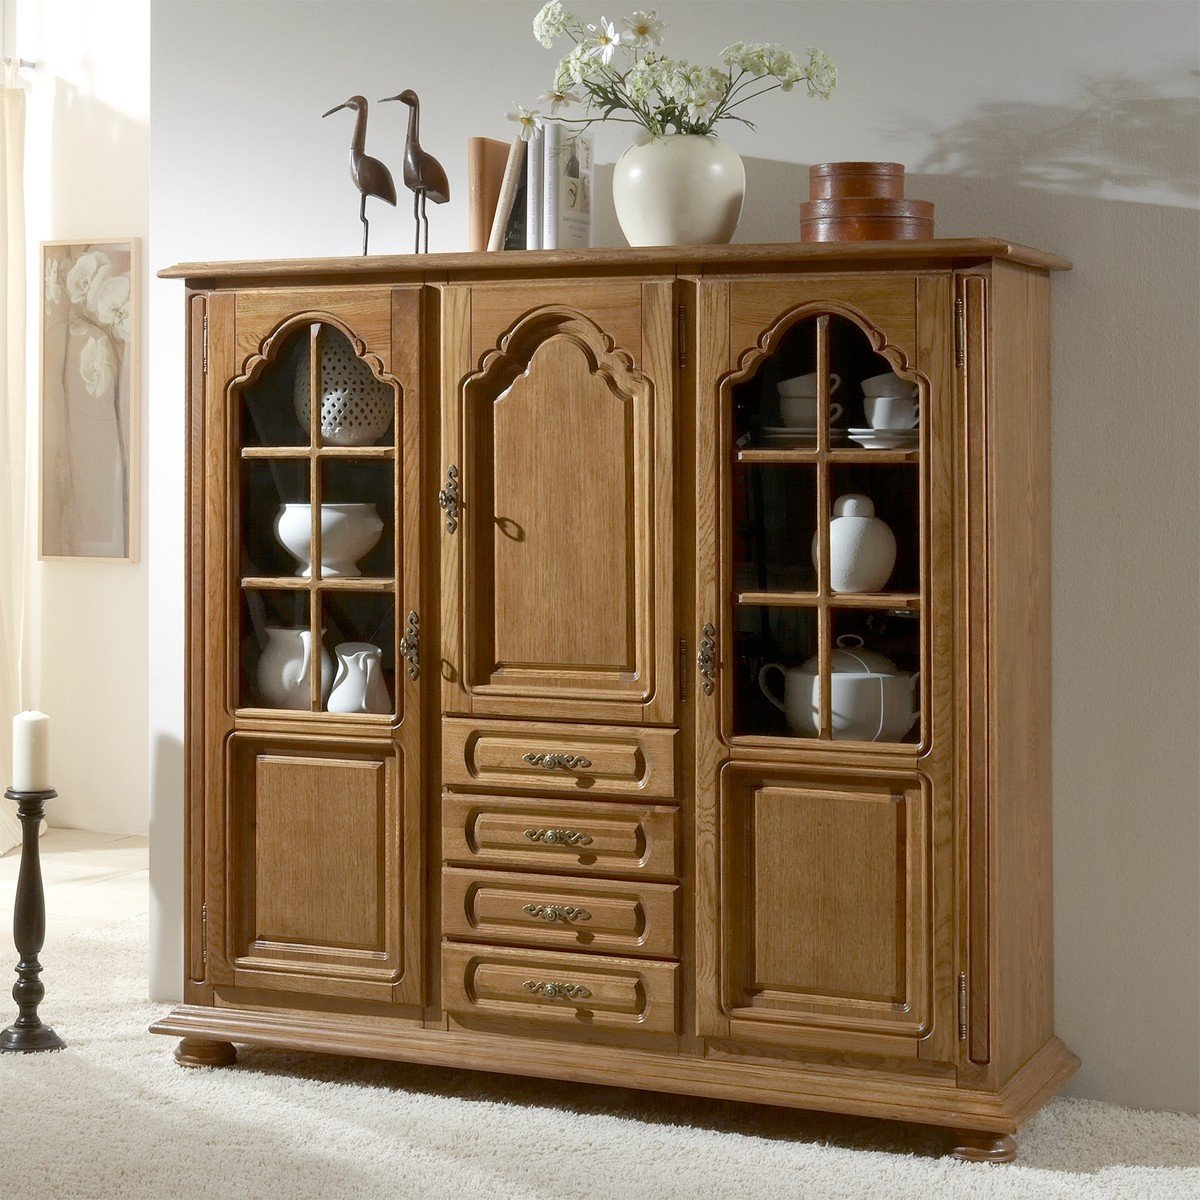 BFK Möbel Collection 45053 Highboard Seefeld, 48 x 152 x 145 cm, P43 eiche